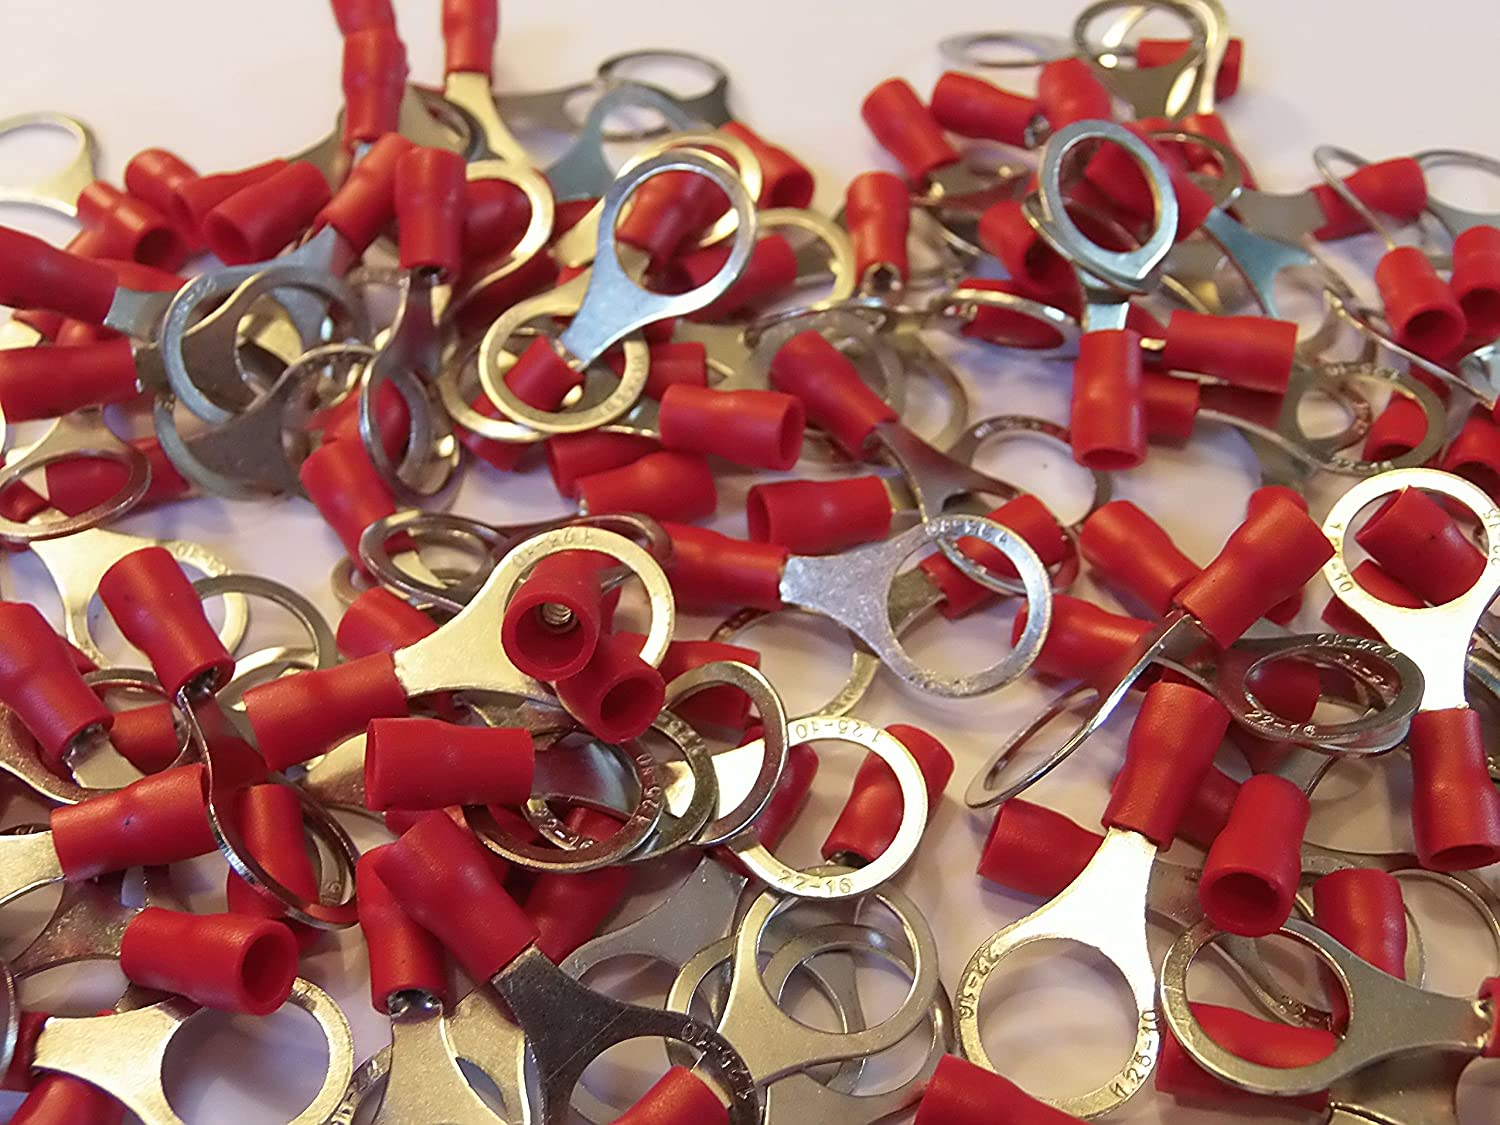 red 10.5mm ring terminal crimp connector for 10mm bolt // screw 50 25 50 100 pack